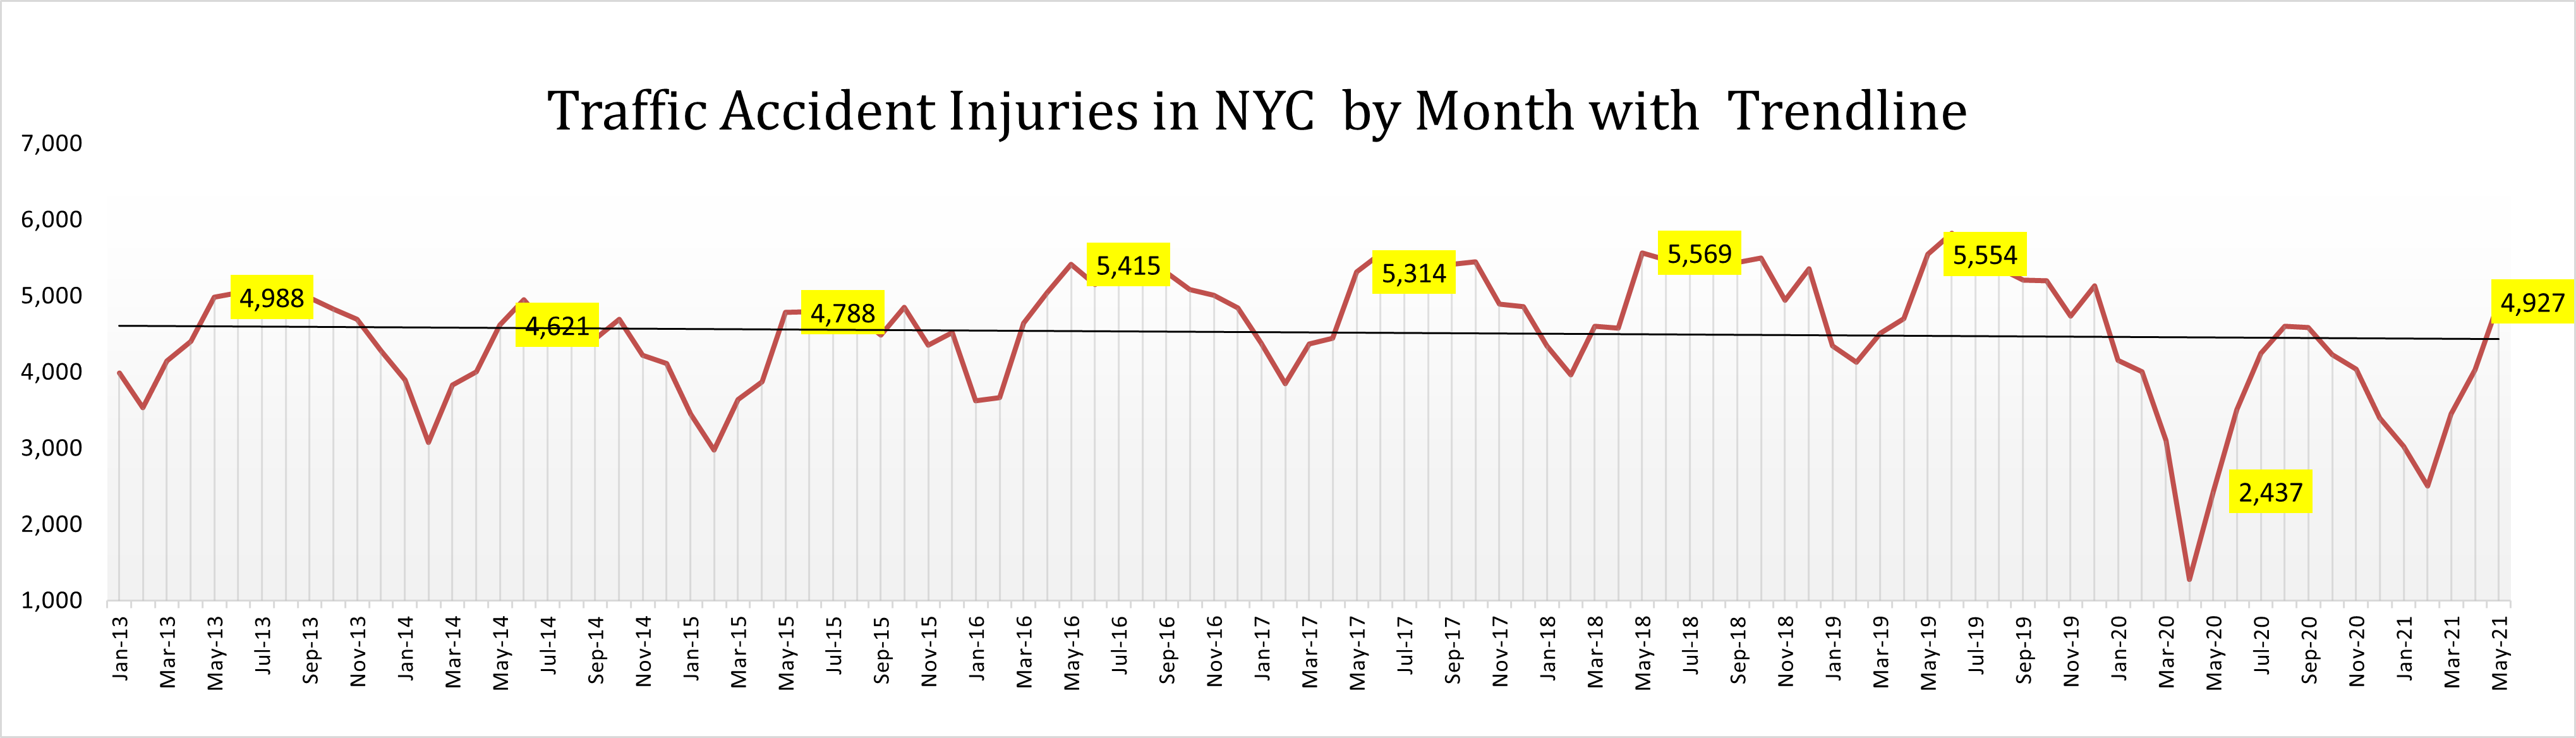 traffic accident injuries nyc May 2020